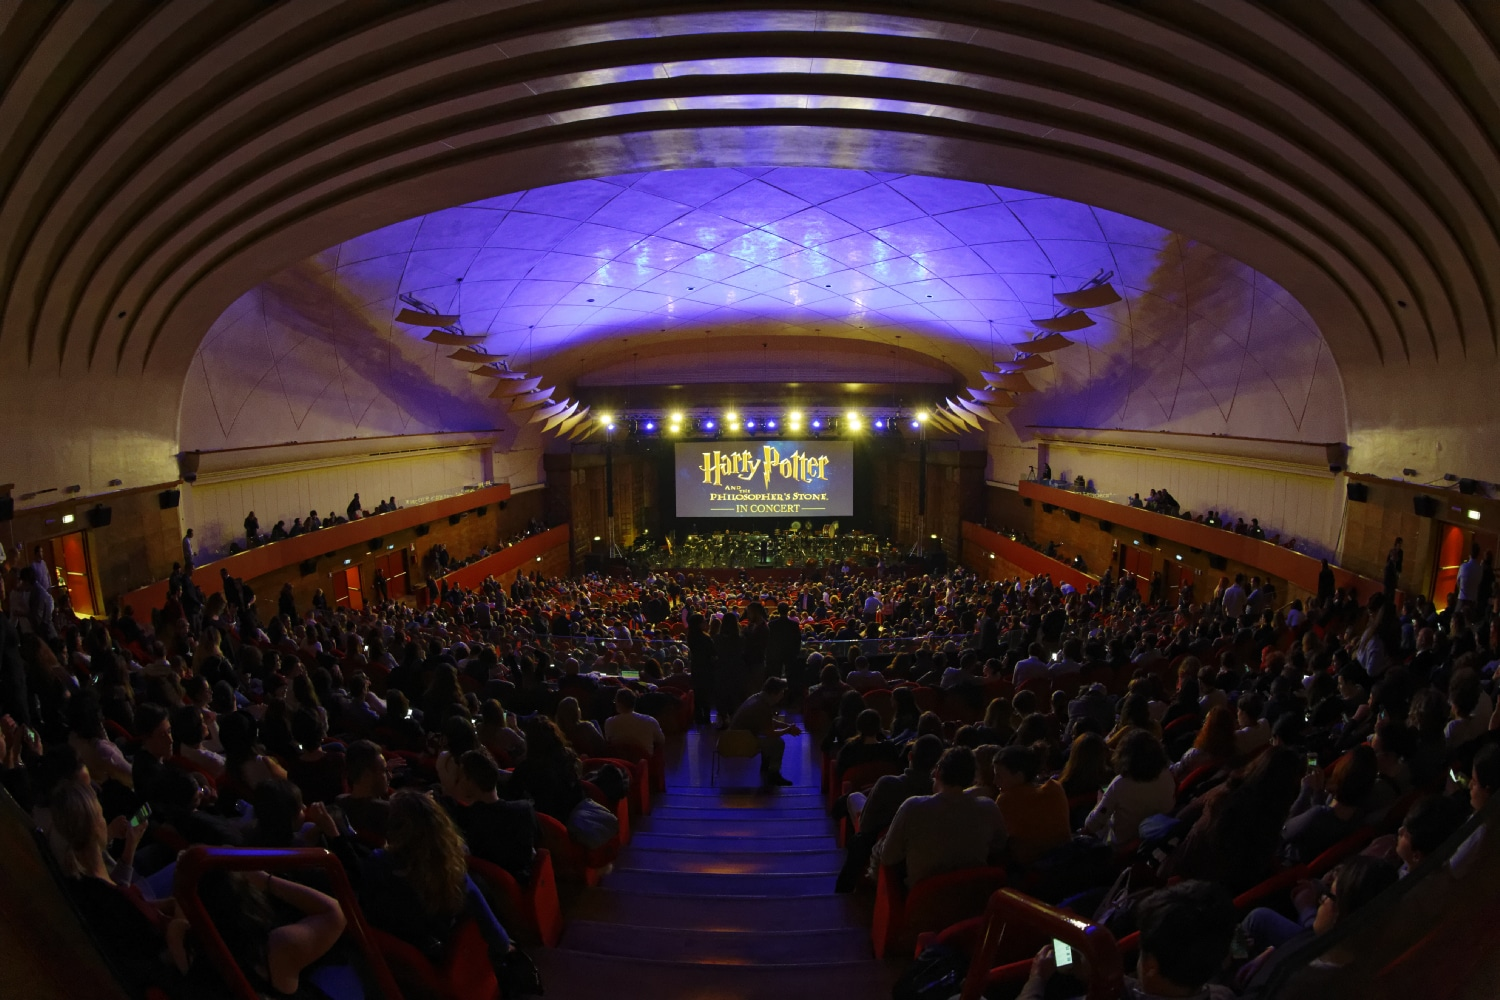 cine-concerto-harry-potter-auditorium-conciliazione-5